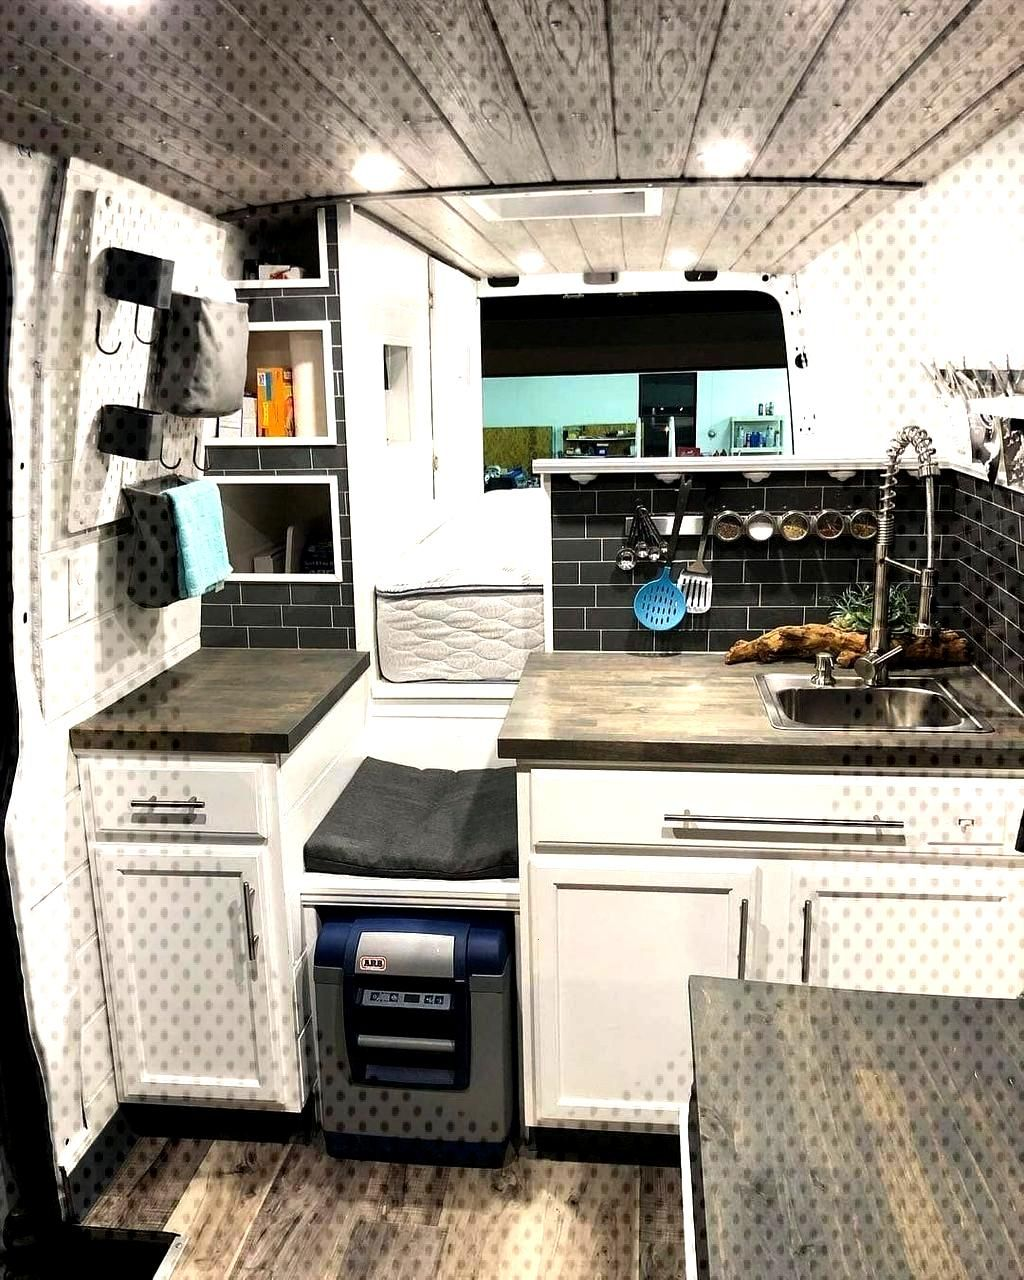 Magnificent Remodel Your Trailers Into Campers